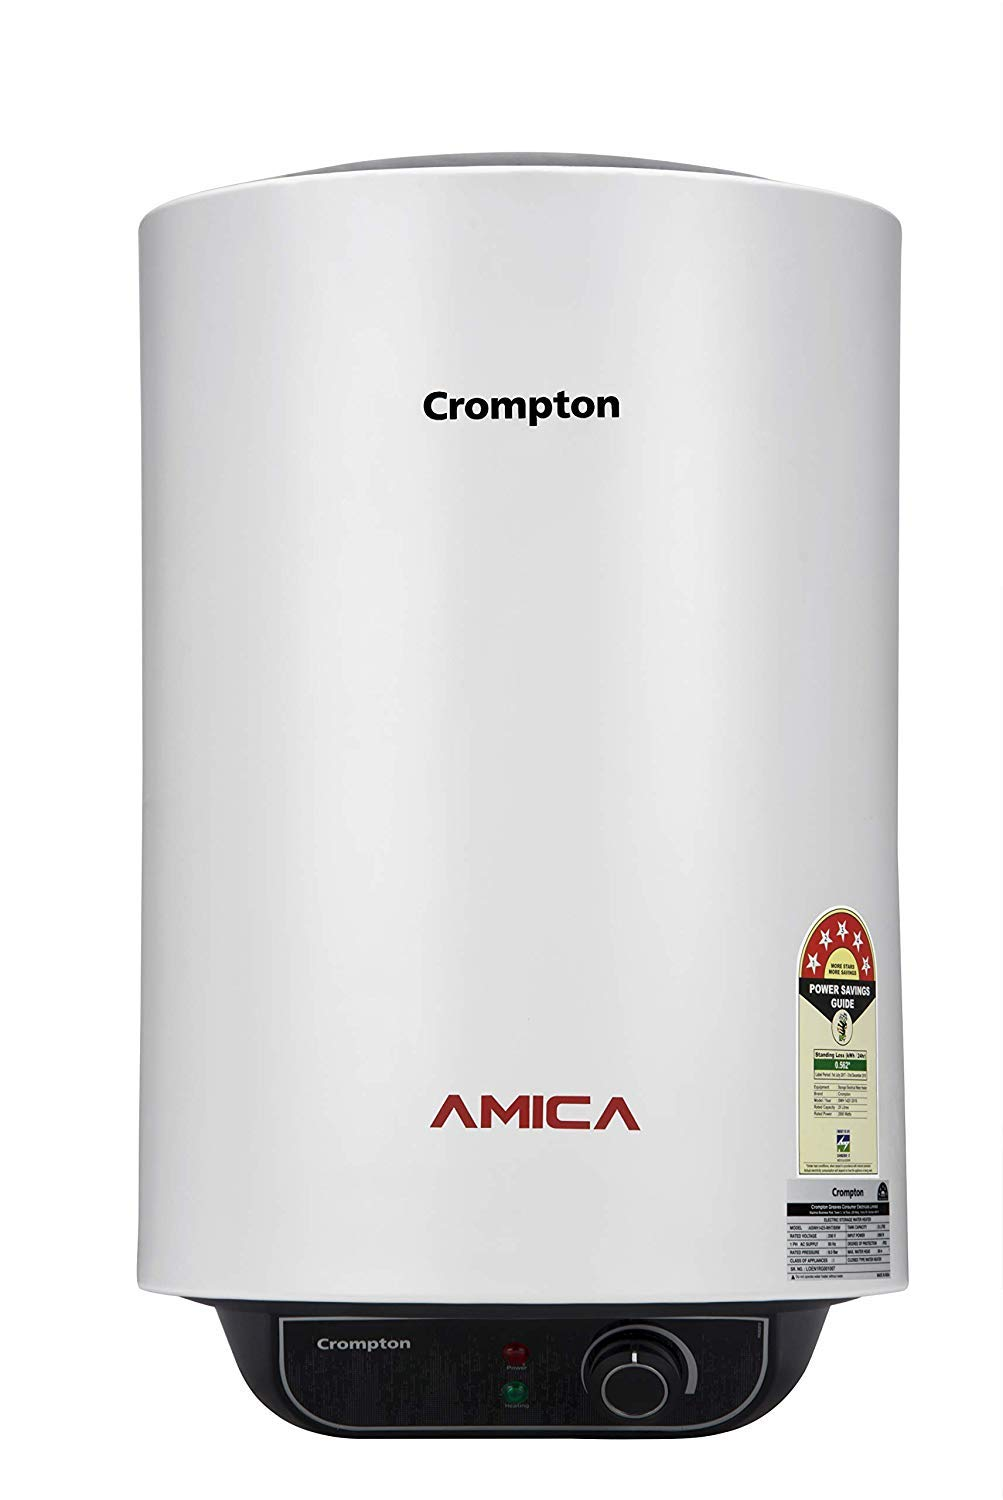 water heater for bathroom